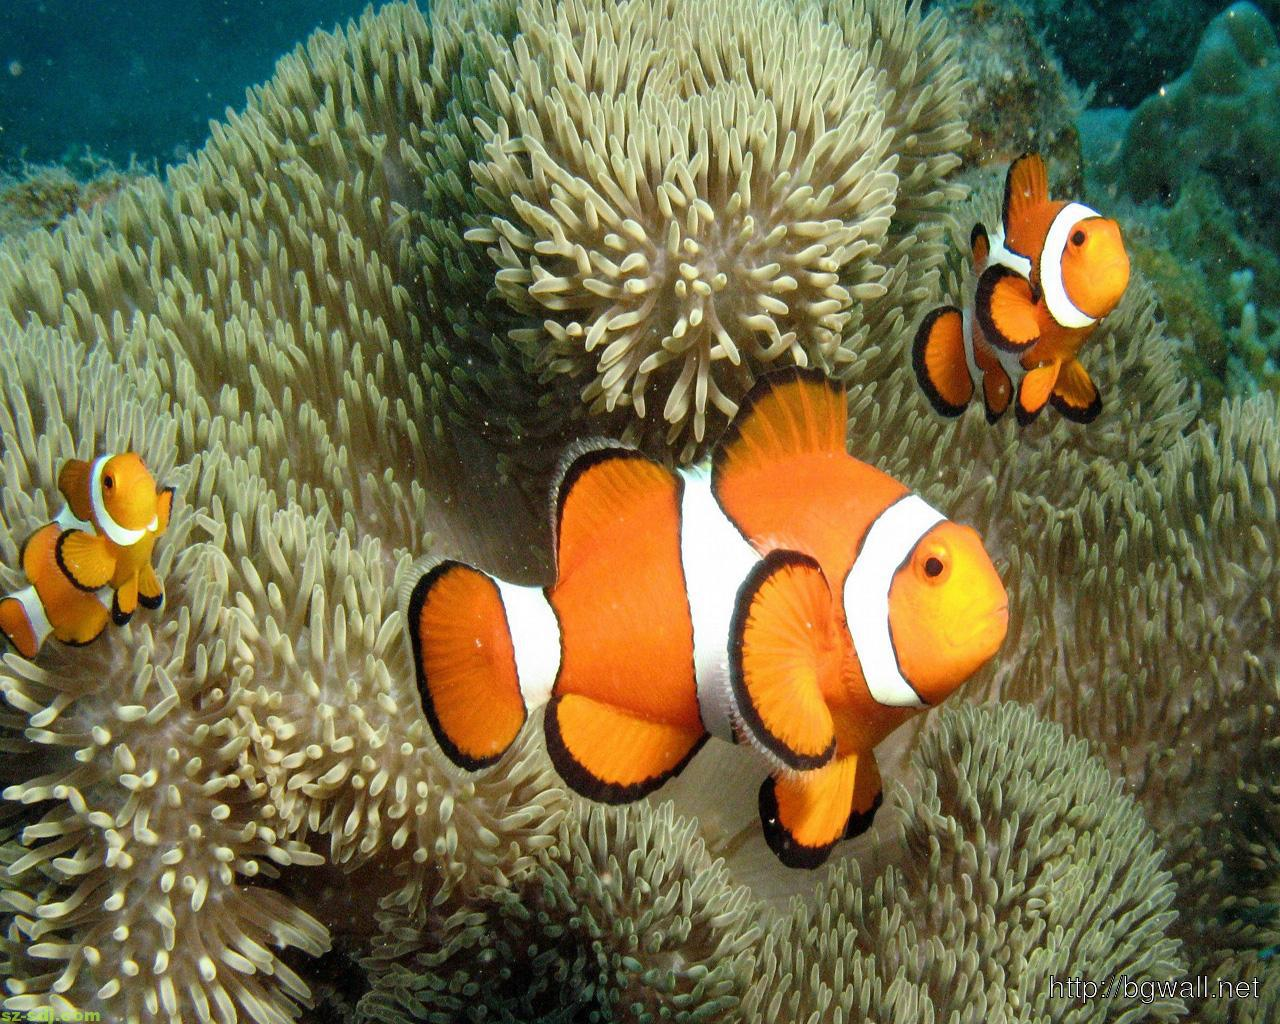 Cute Clown Fish Wallpaper Image Background Wallpaper Hd